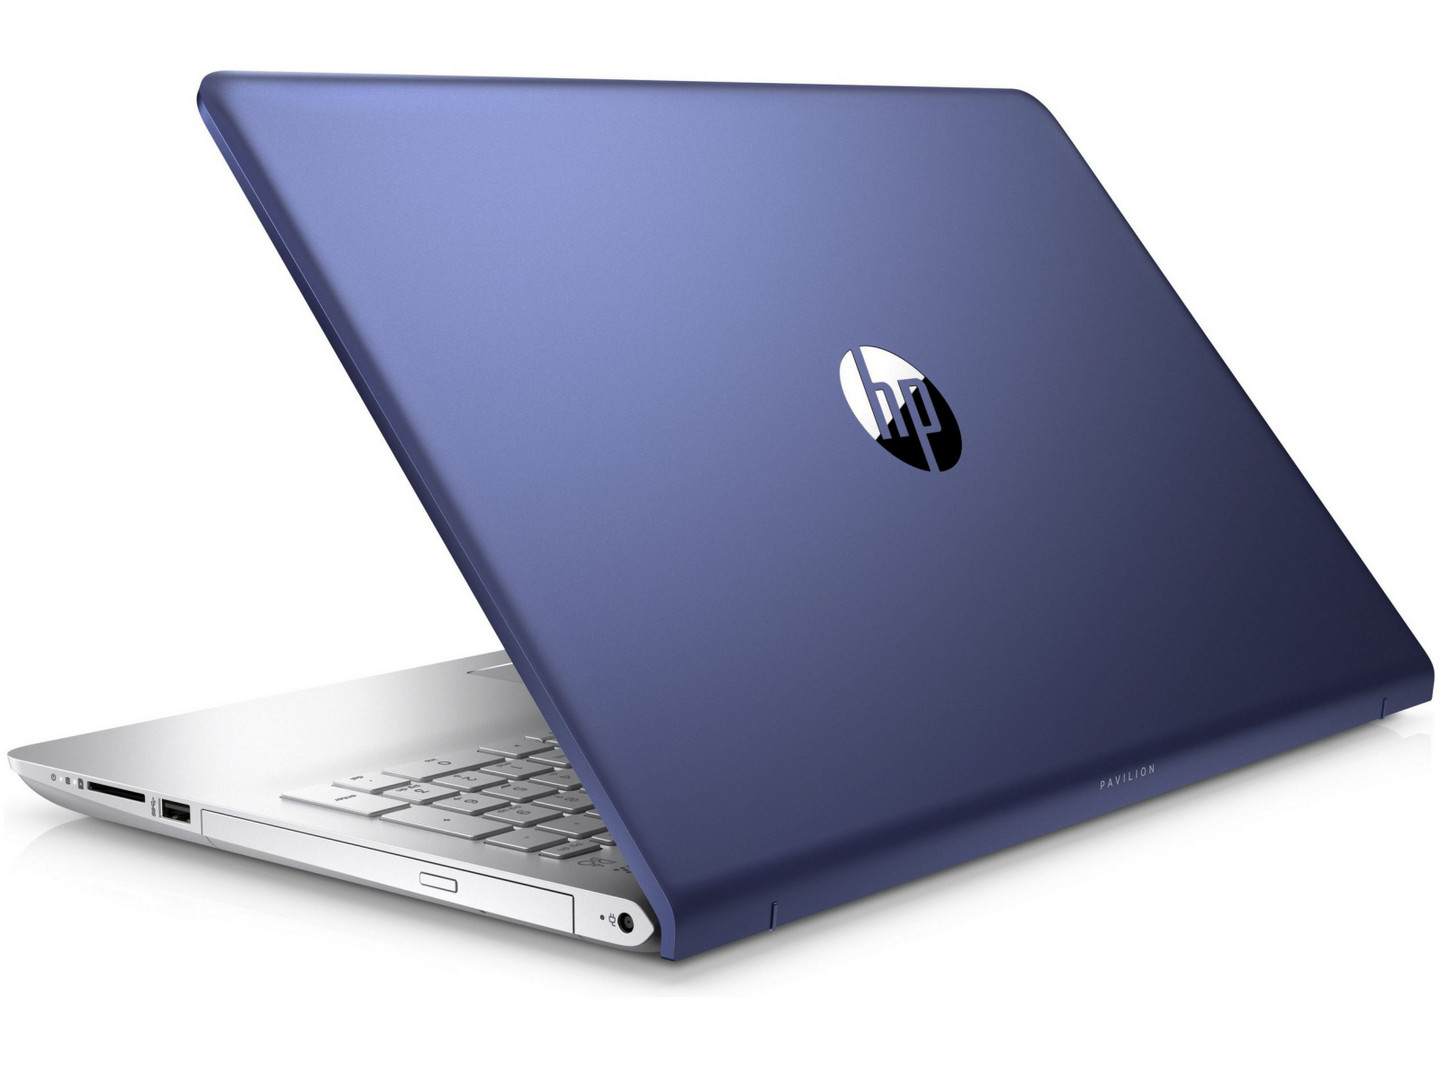 hp pavilion 15t i5 8250u 940mx fhd laptop review reviews. Black Bedroom Furniture Sets. Home Design Ideas